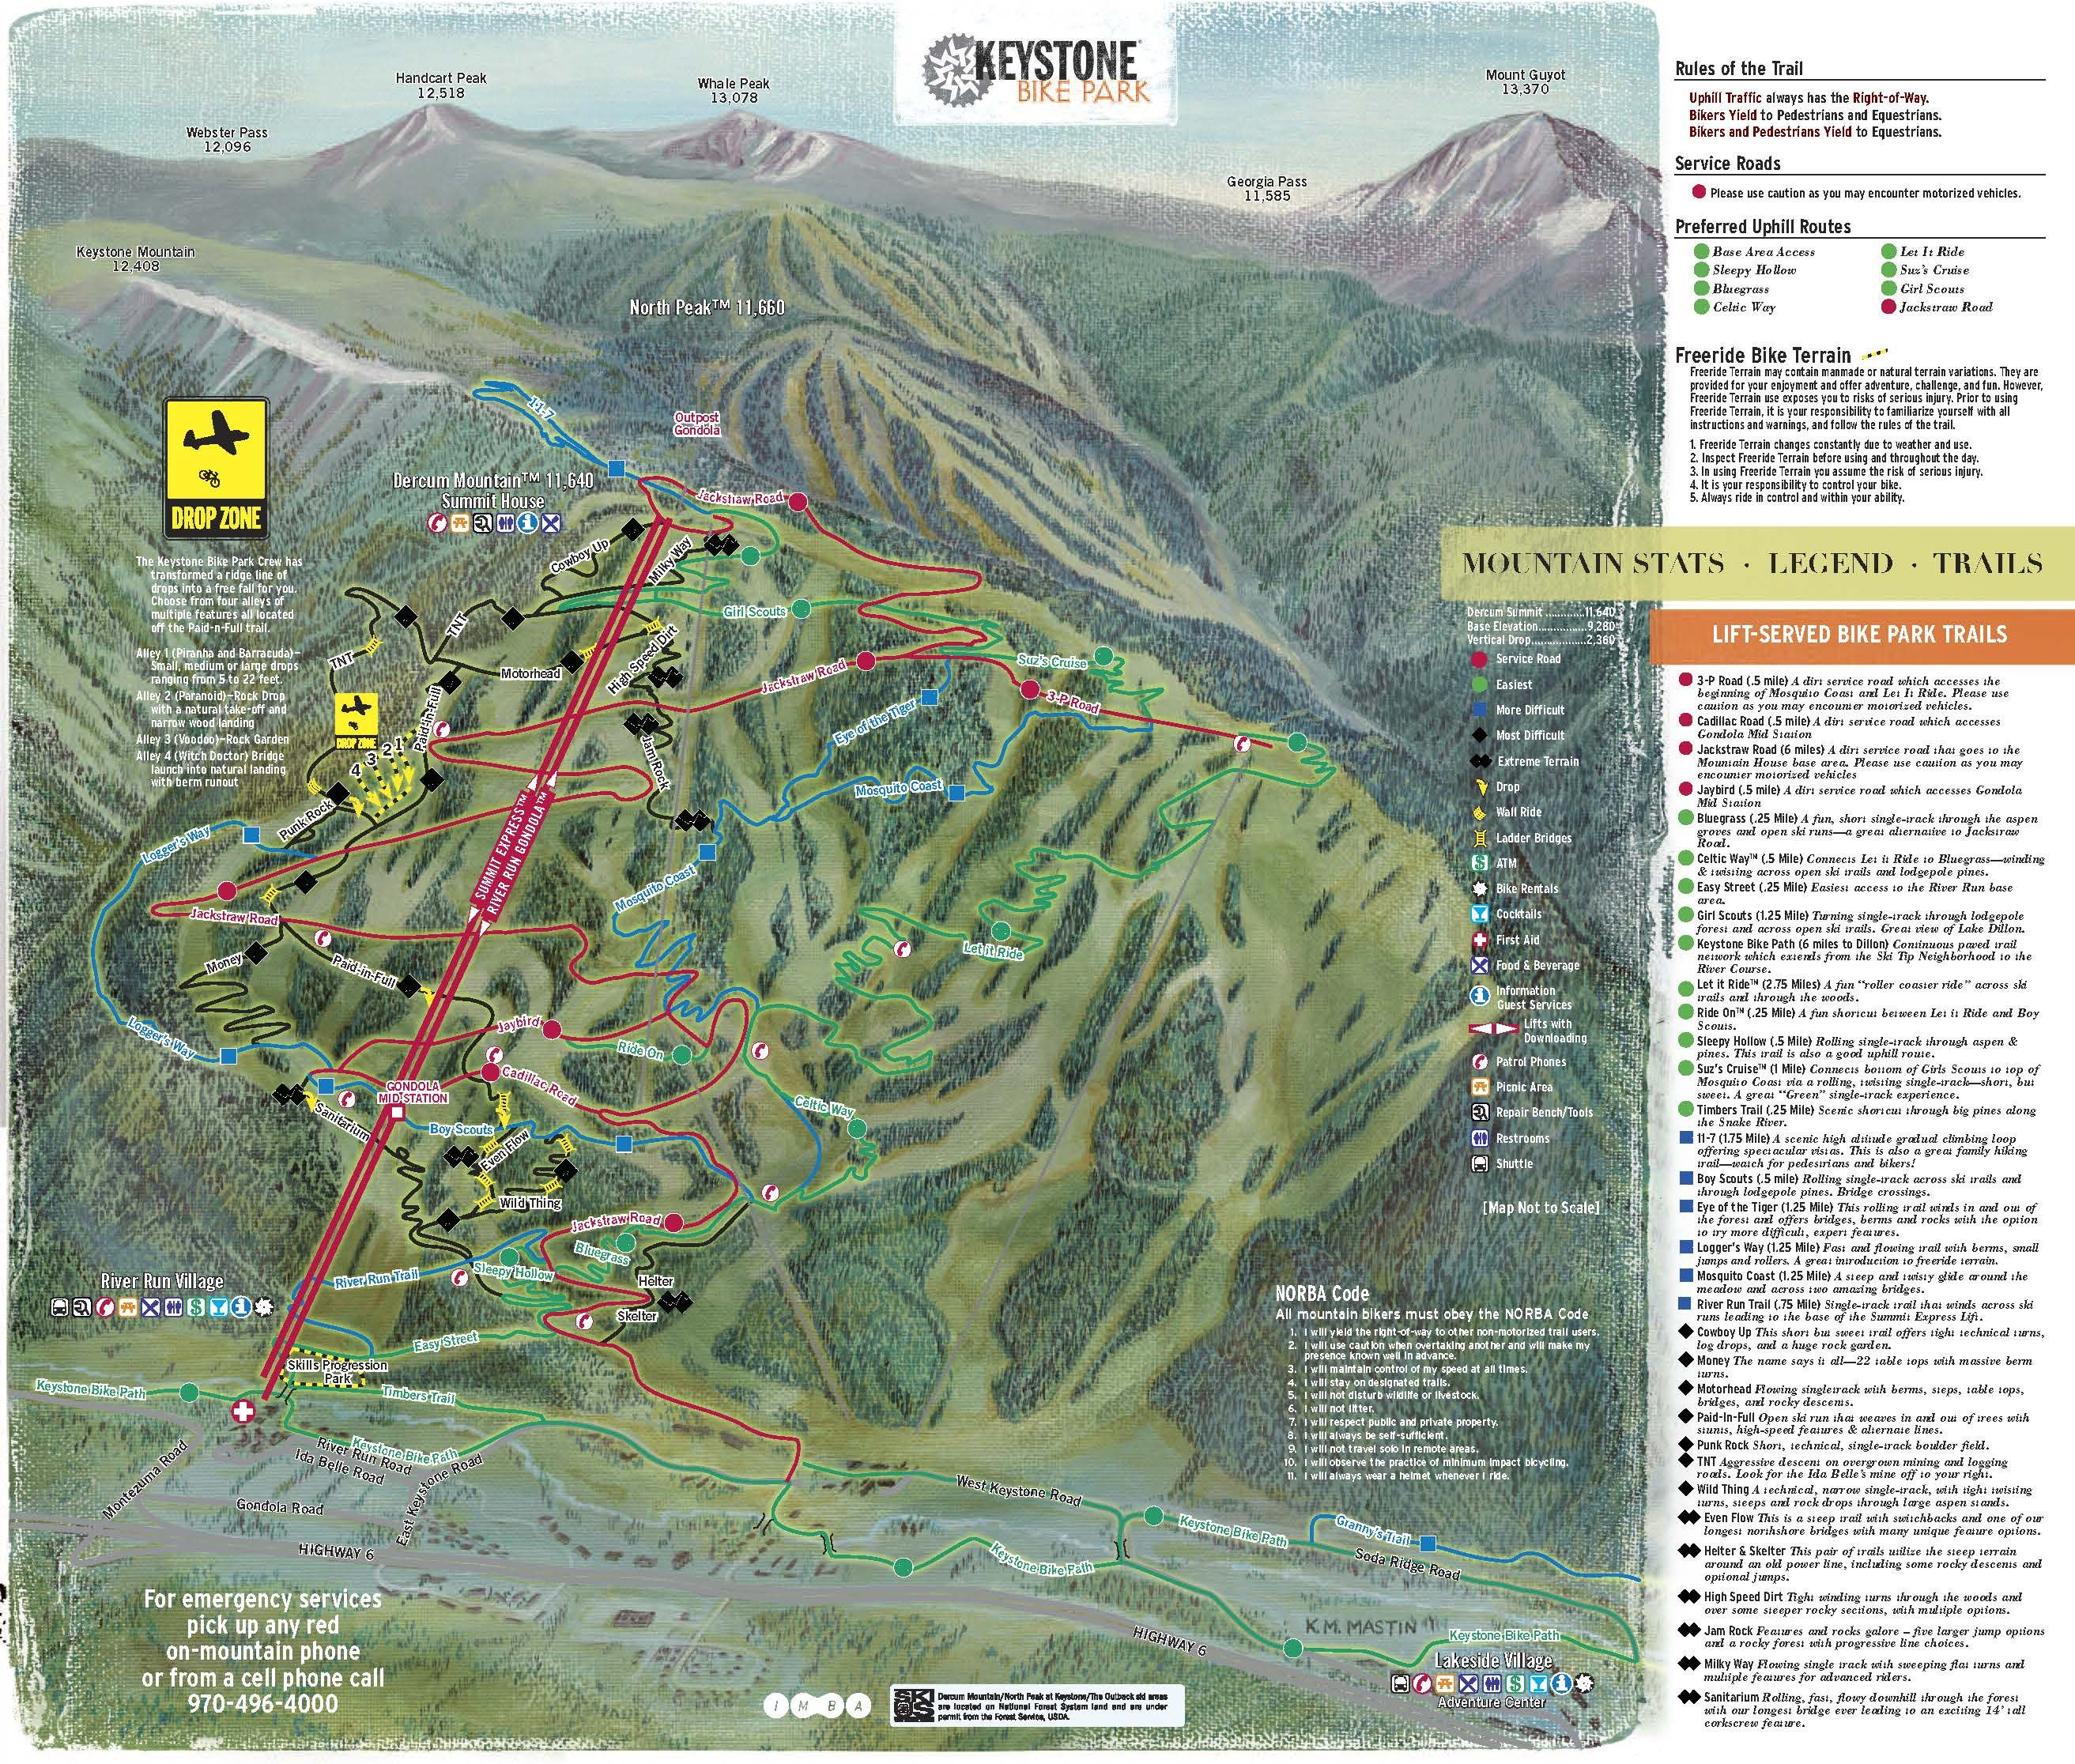 Keystone Downhill Bike Trail Map To Do In Breckenridge